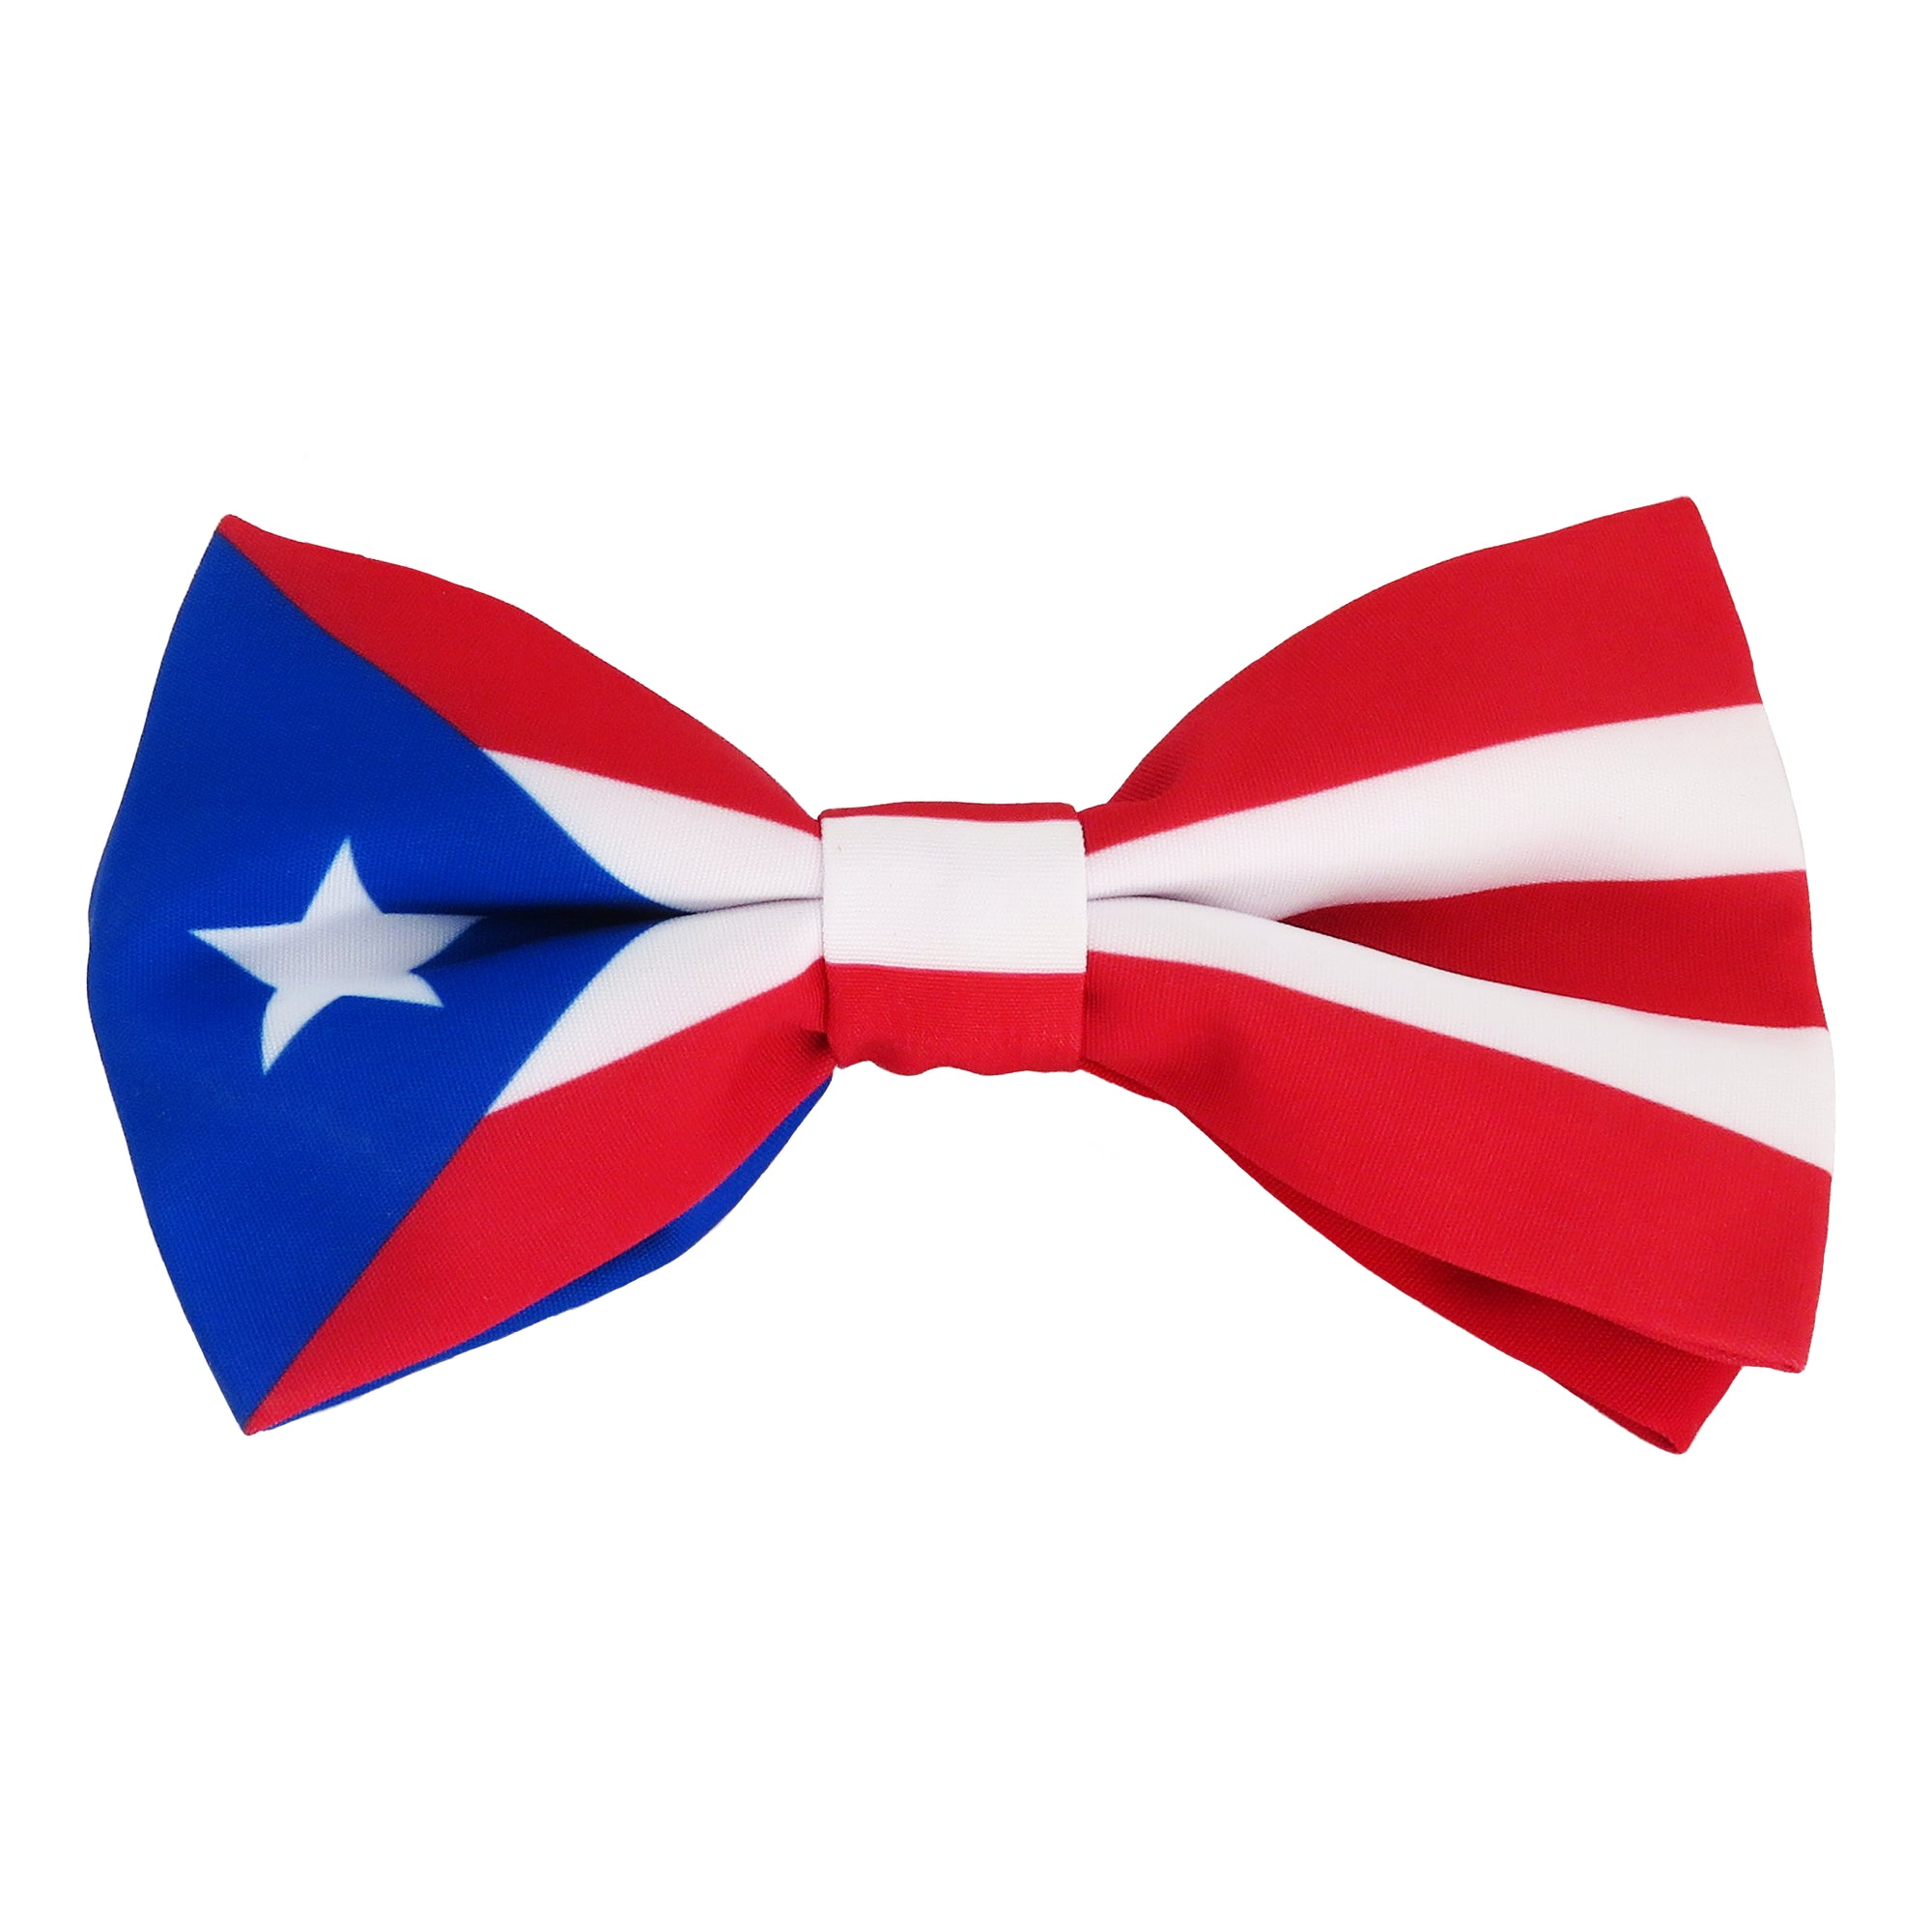 Puerto Rico Bow Tie for men, boys and babies